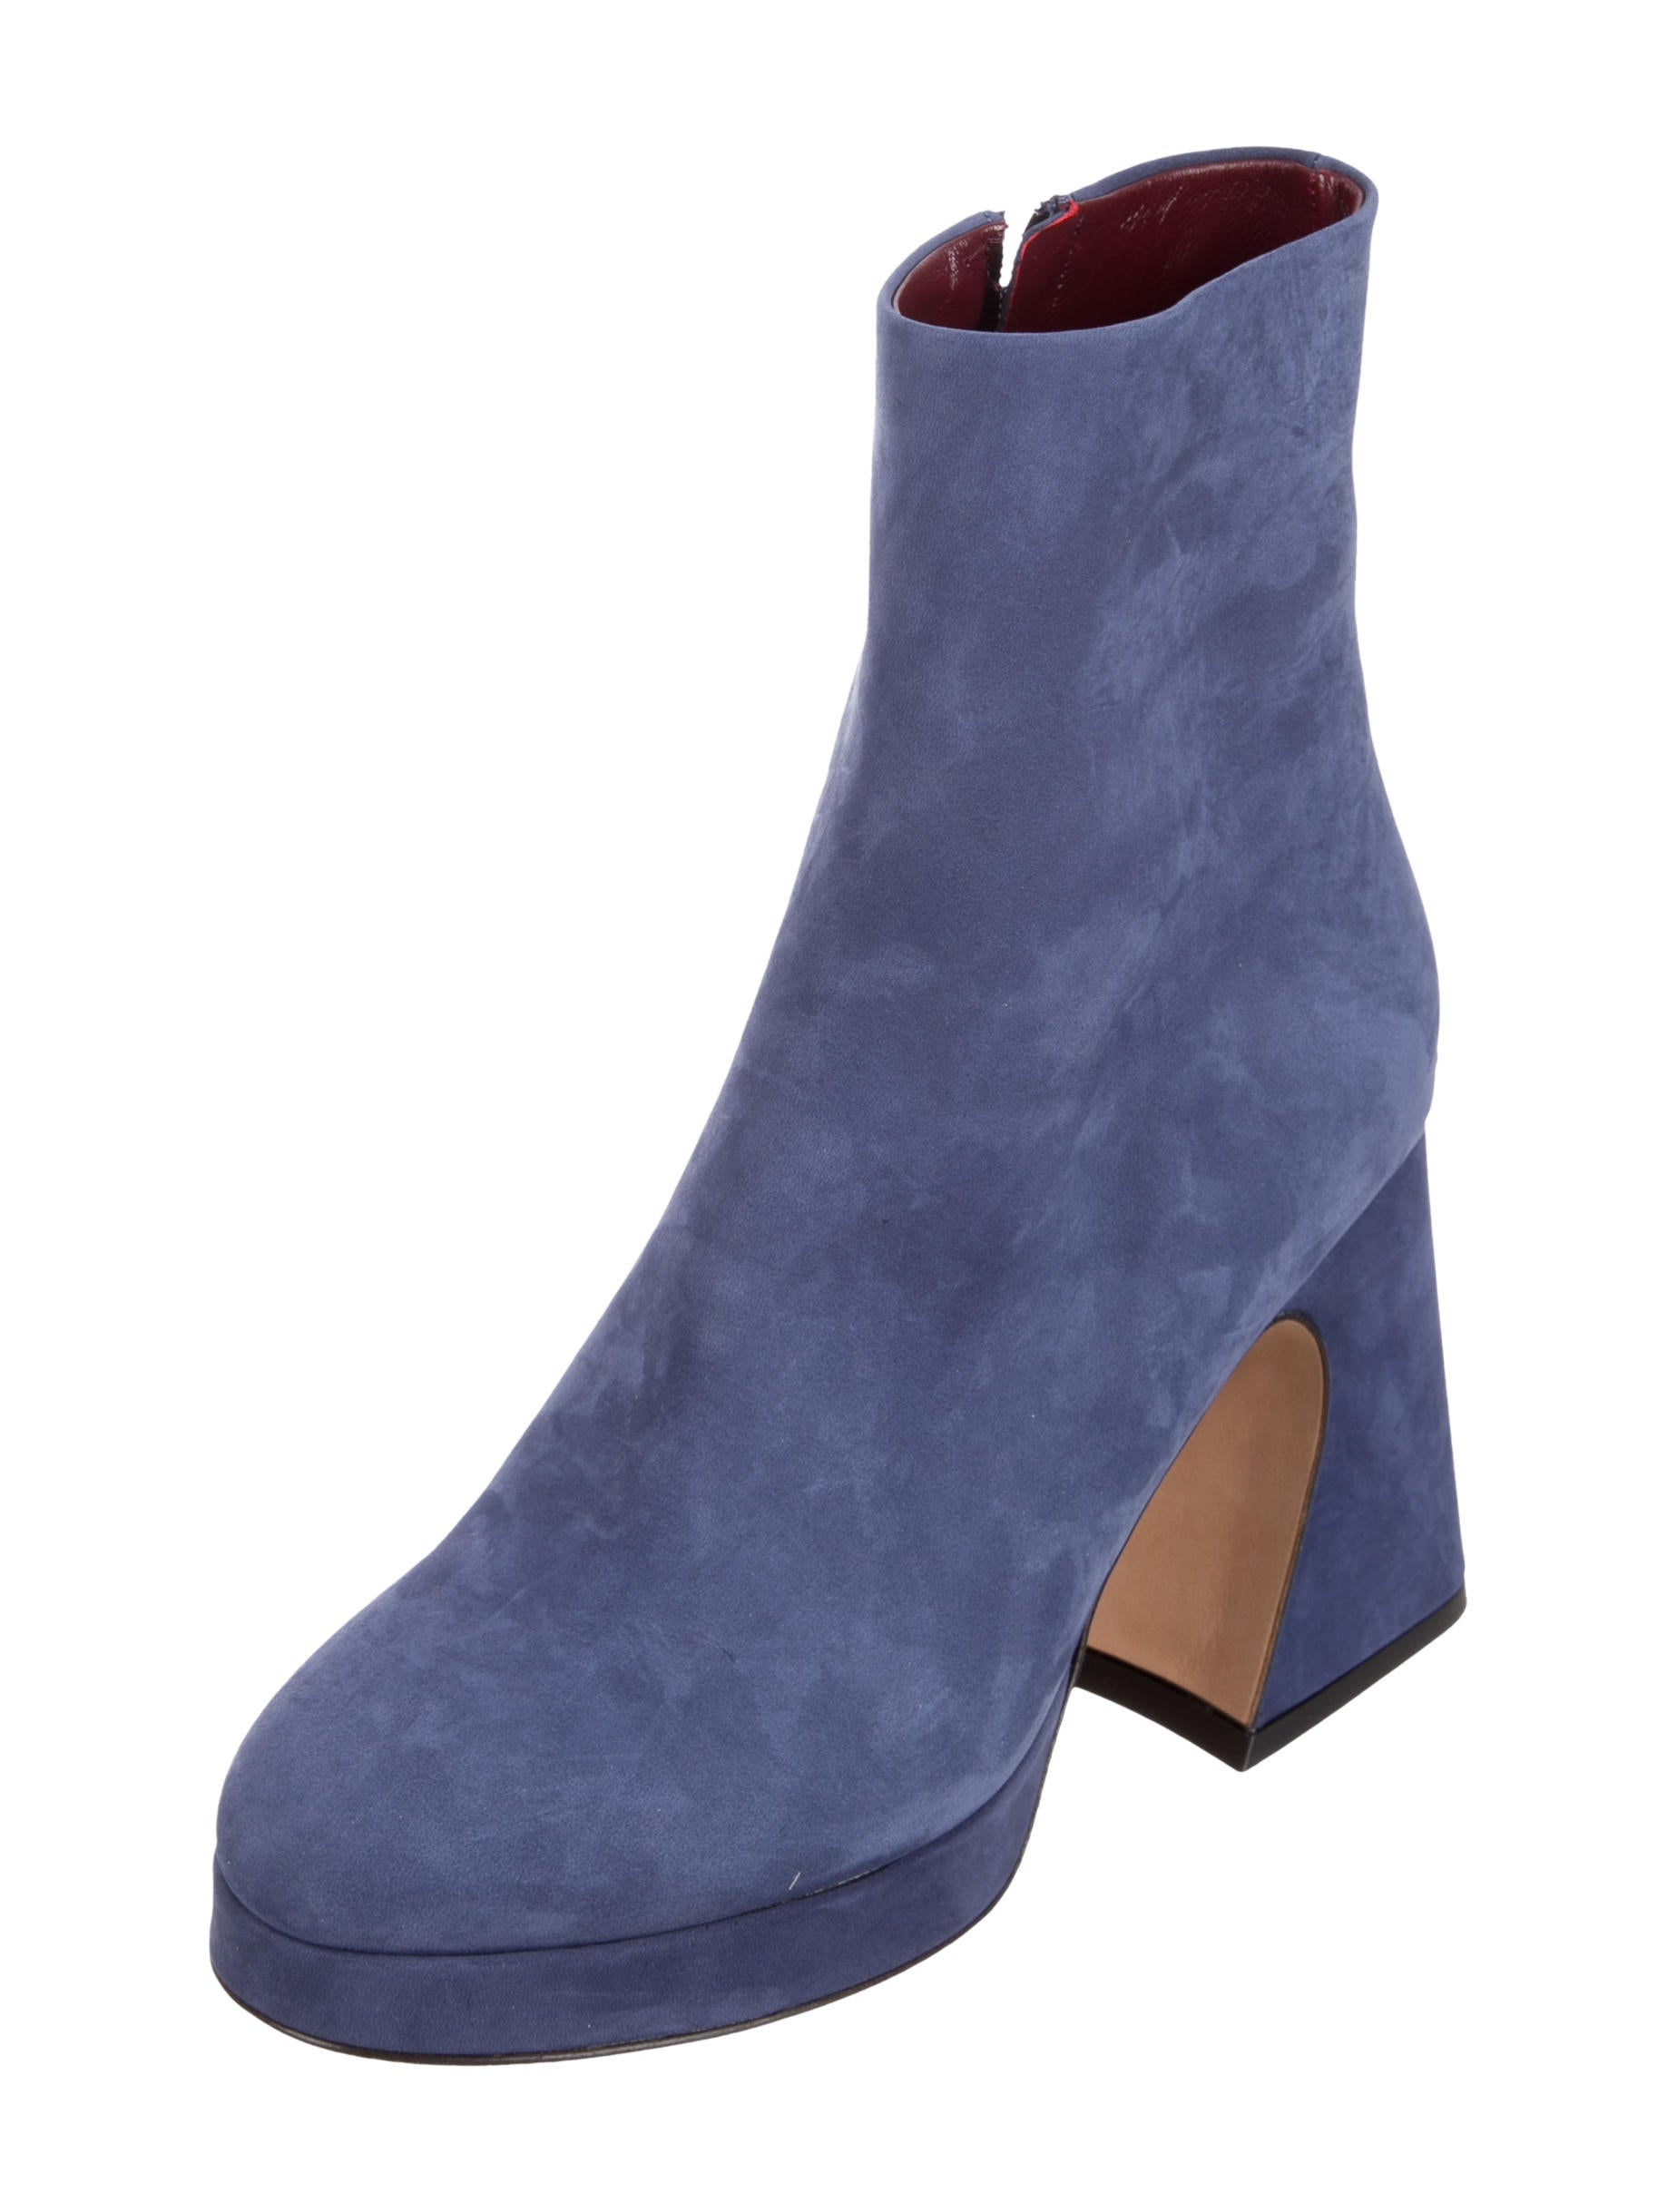 buy cheap new arrival discount 2014 new Sies Marjan Gretta Suede Ankle Boots w/ Tags UusPXTAagg